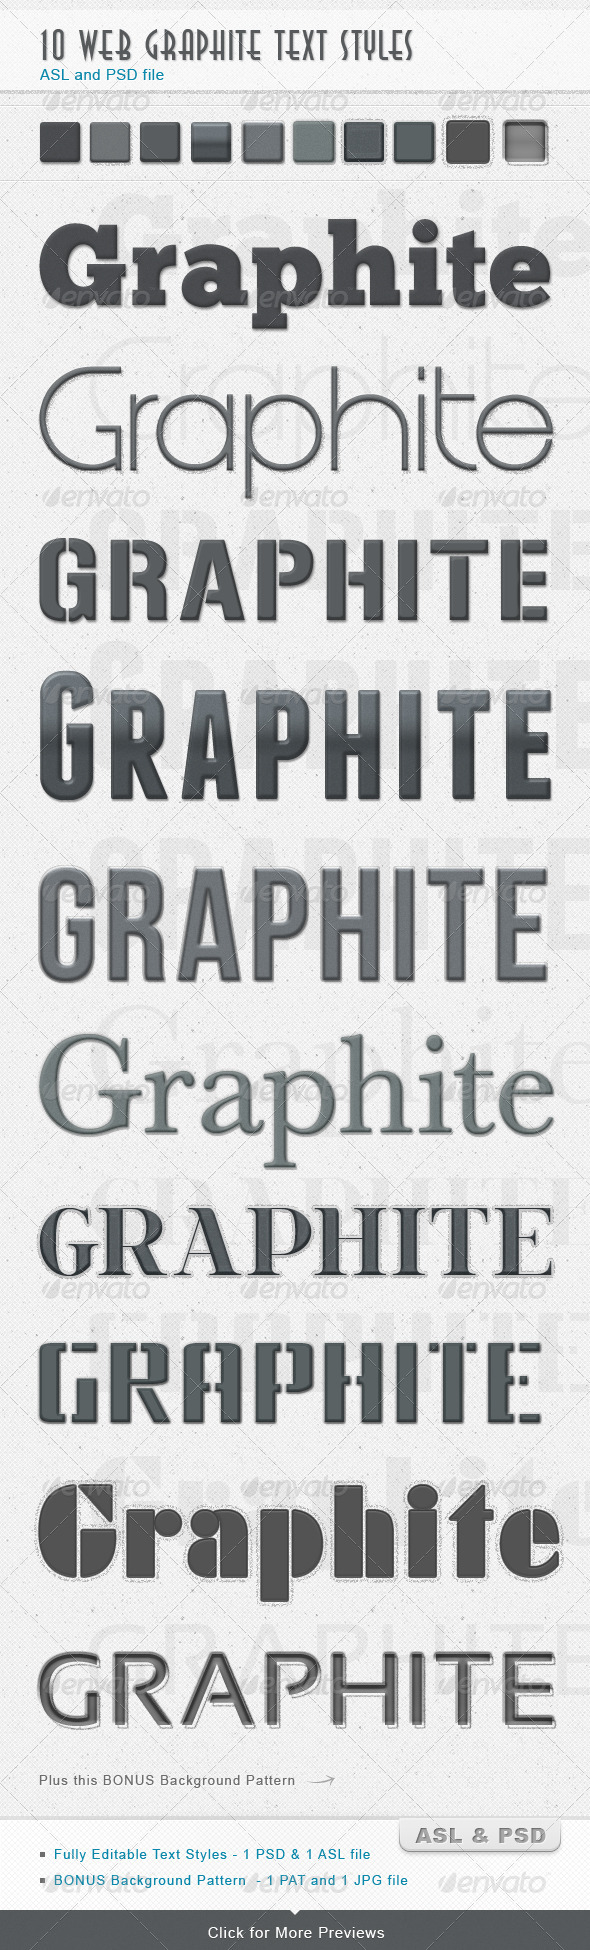 Graphite Text Styles - Photoshop Add-ons